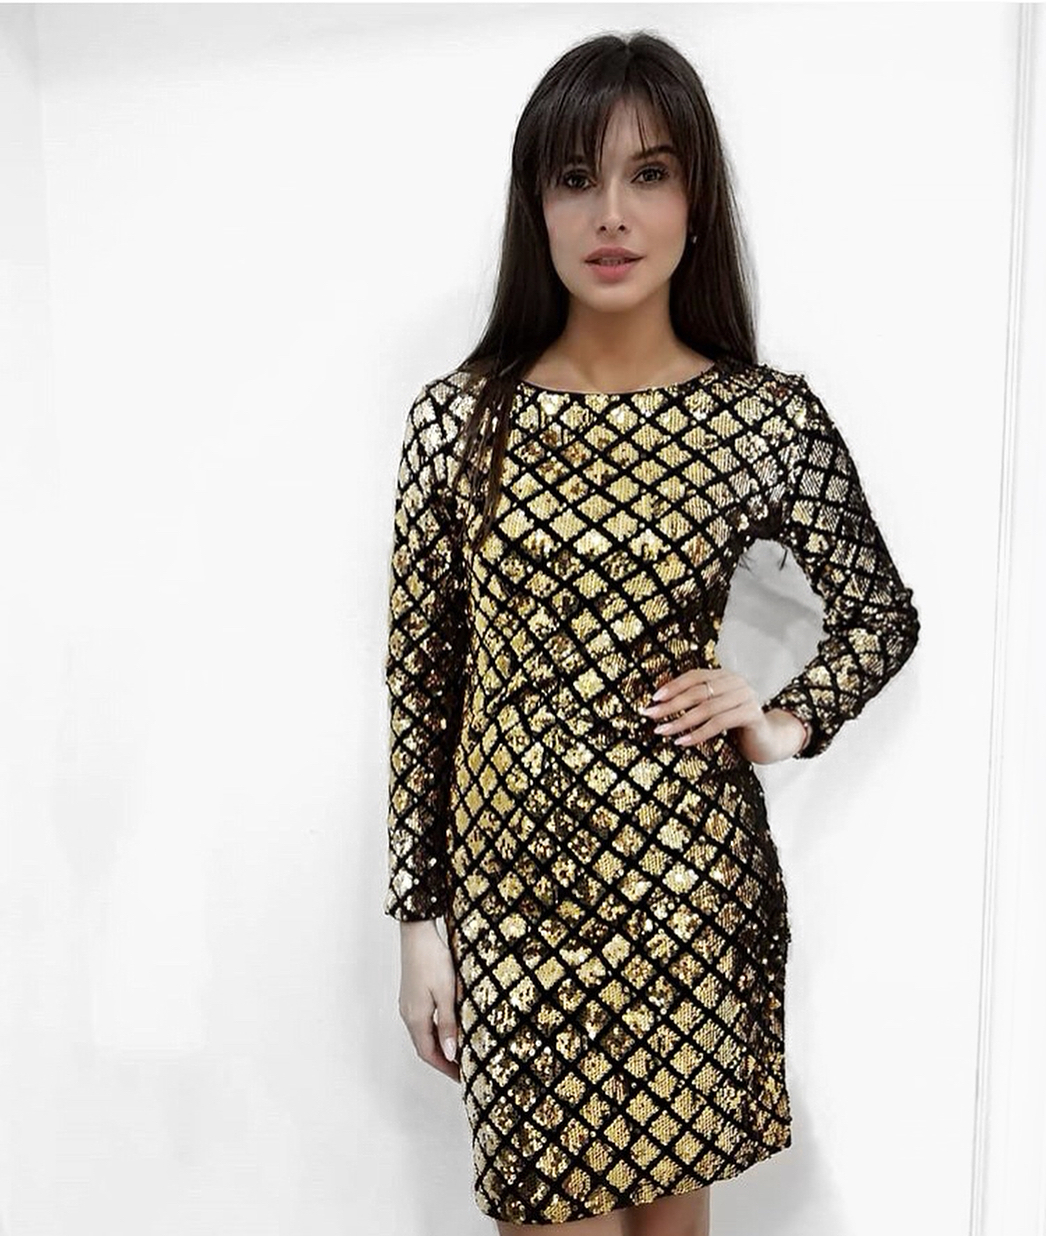 Black Short Dress With Gold Sequins And Full Sleeves.